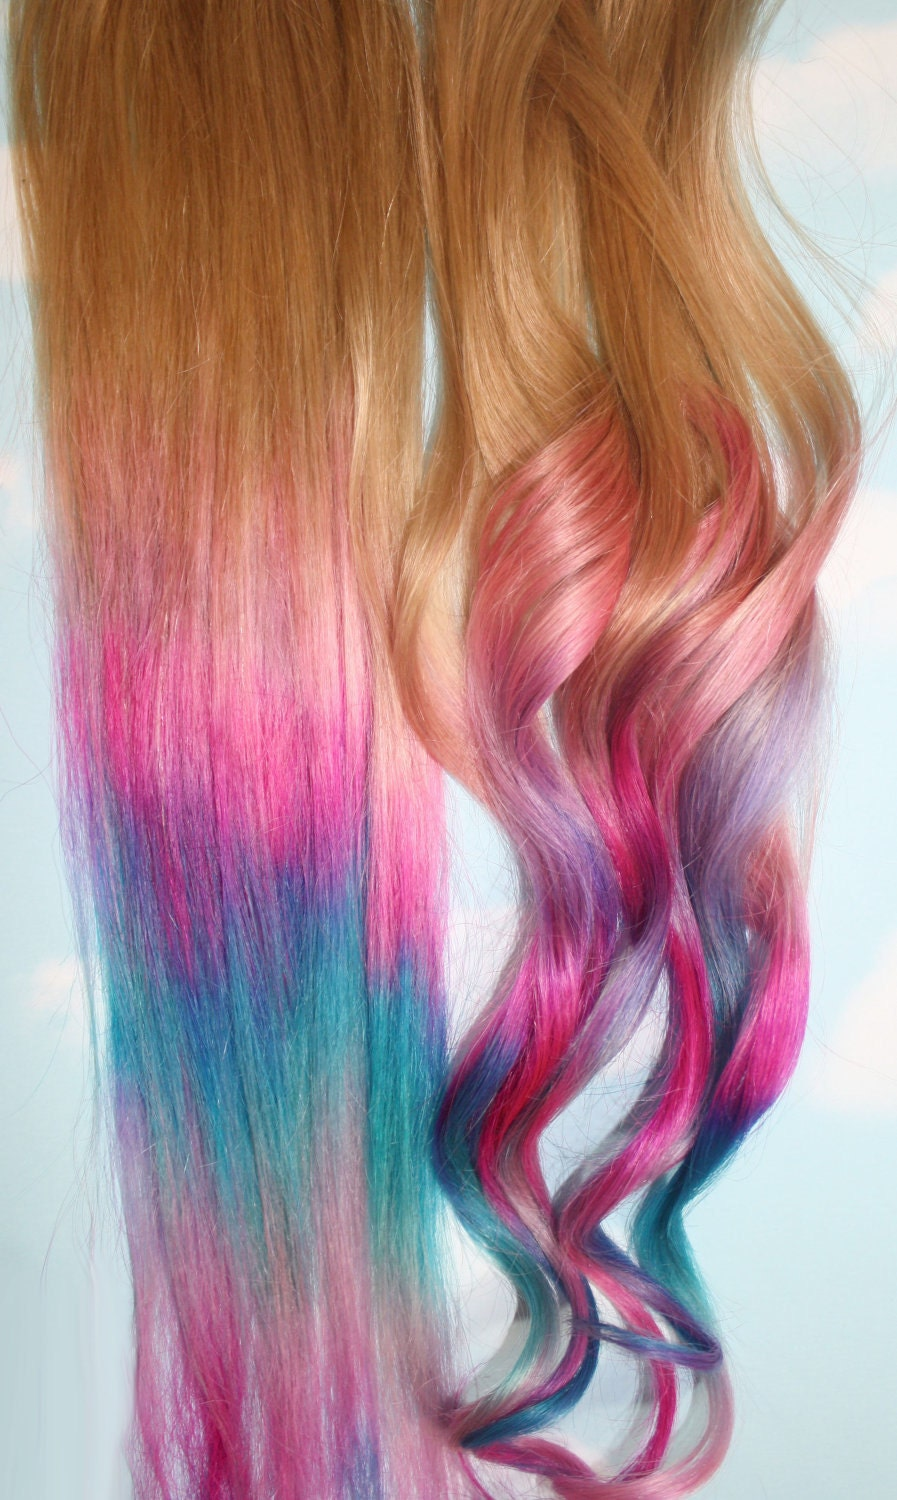 handmade ombre pastel tie dye tips human hair by cloud9jewels. Black Bedroom Furniture Sets. Home Design Ideas